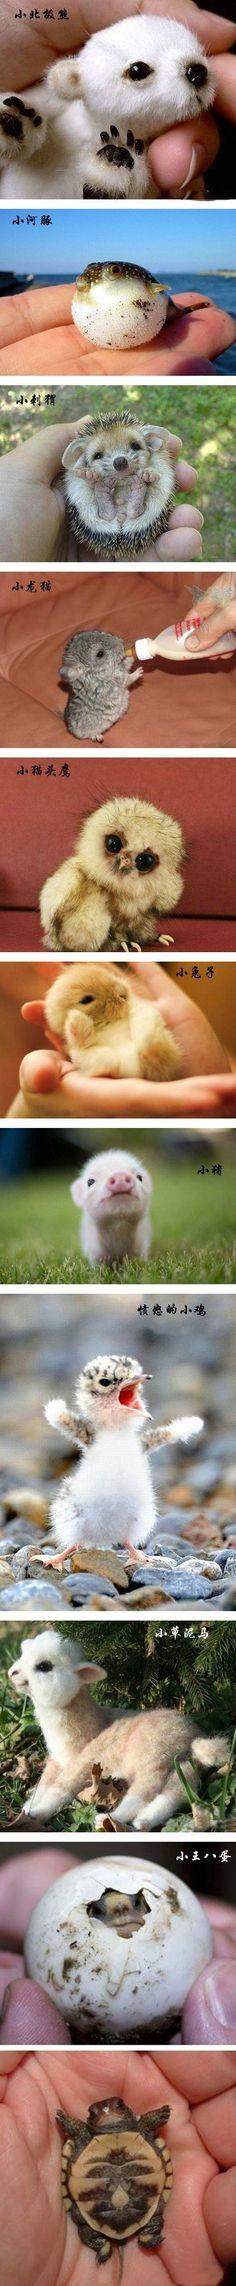 "new born baby animals, if you don't say ""awww"" or smile uncontrollably you're not human."